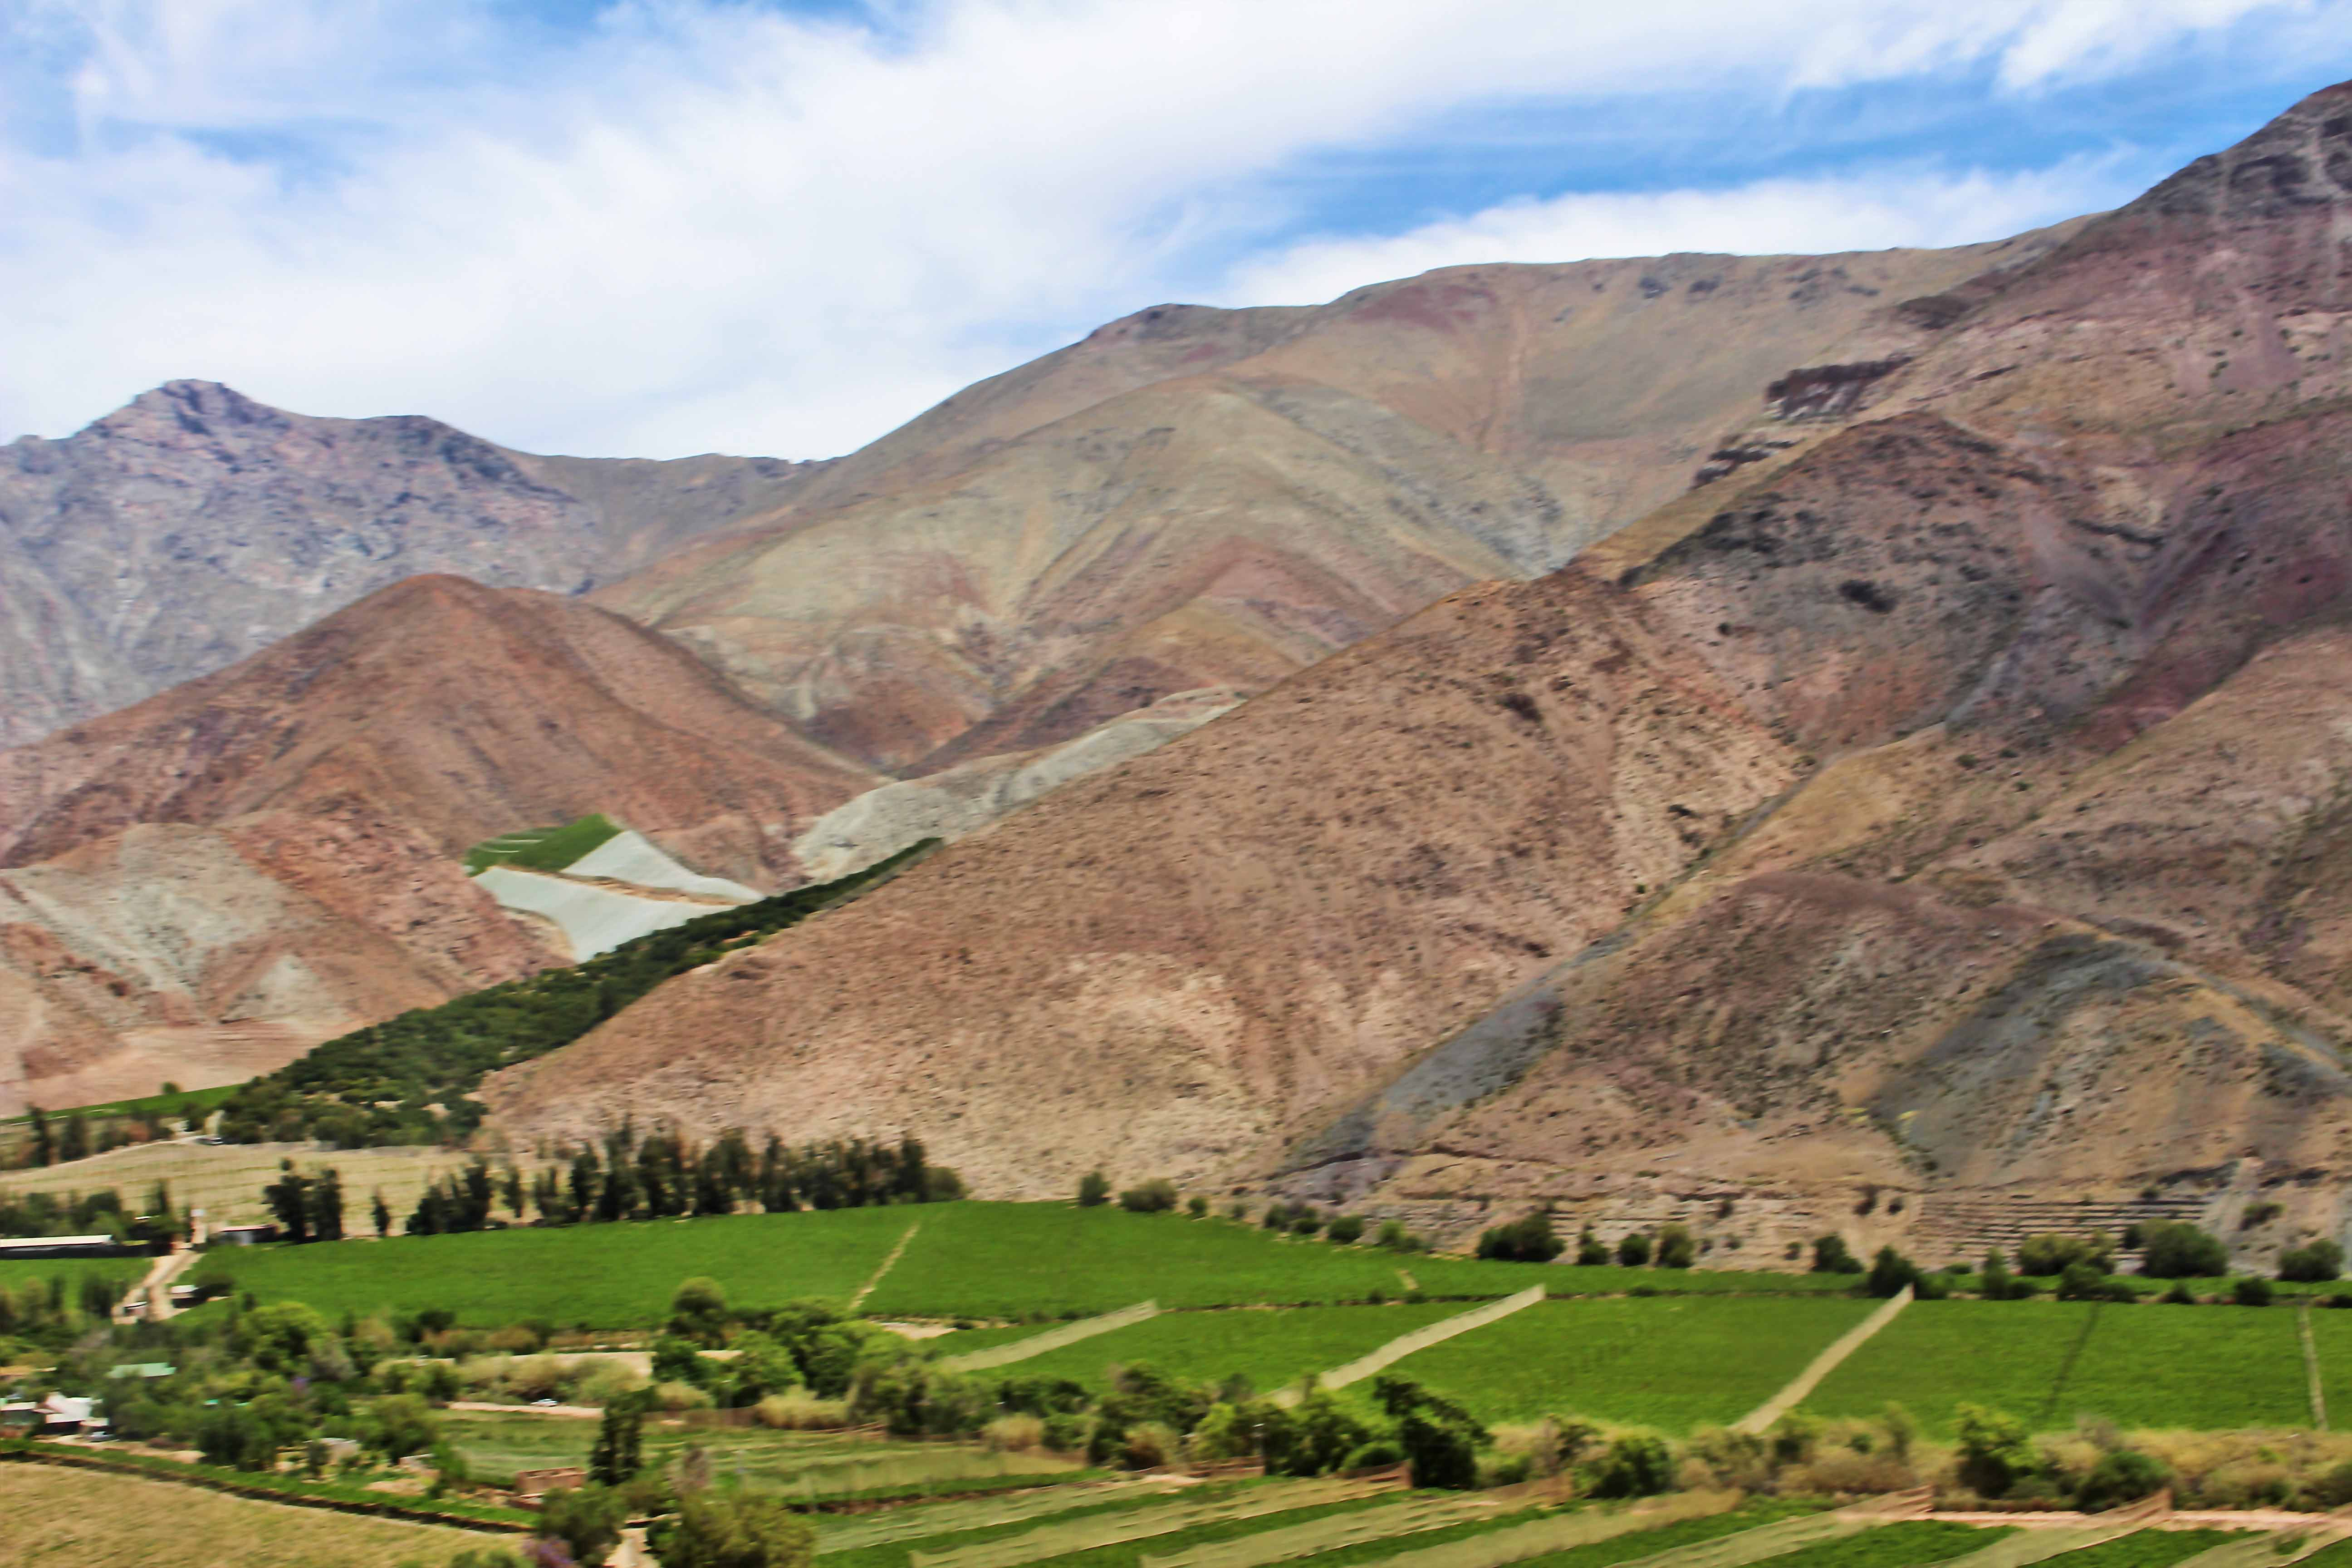 Elqui Valley Cover Photo, Inca to Inuit